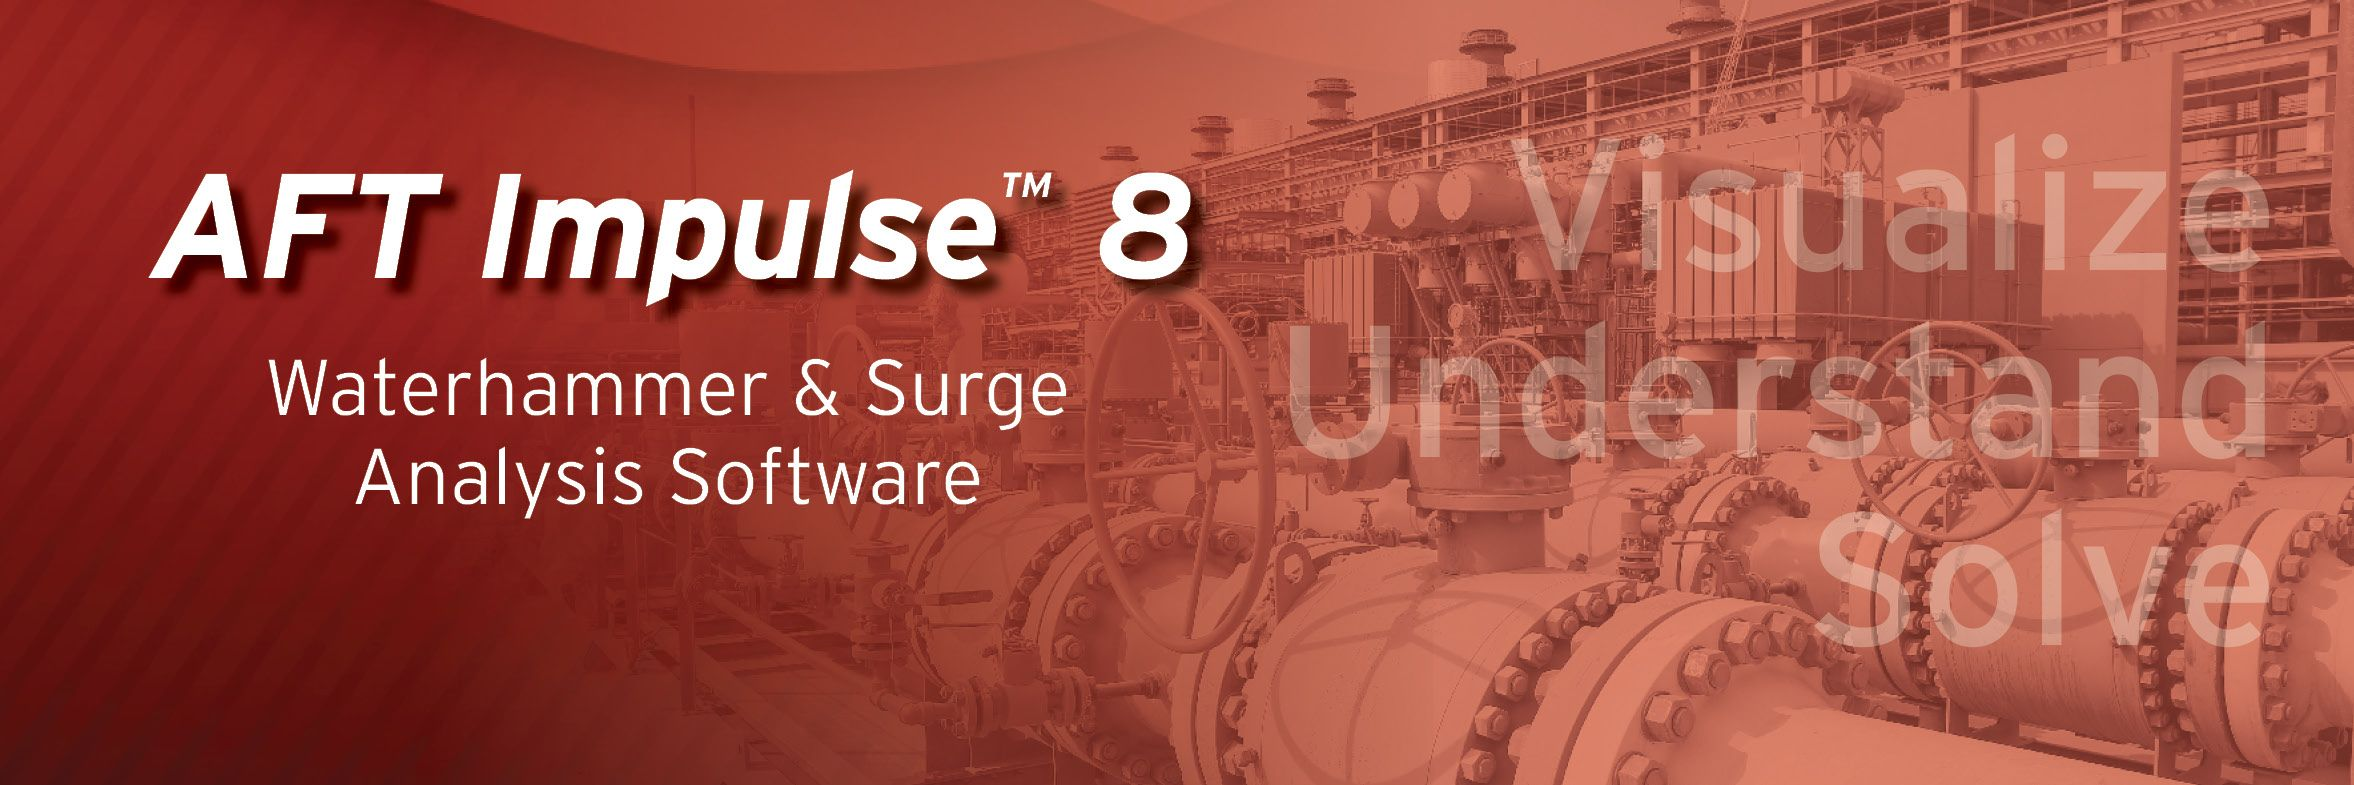 Learn More about AFT Impulse 8